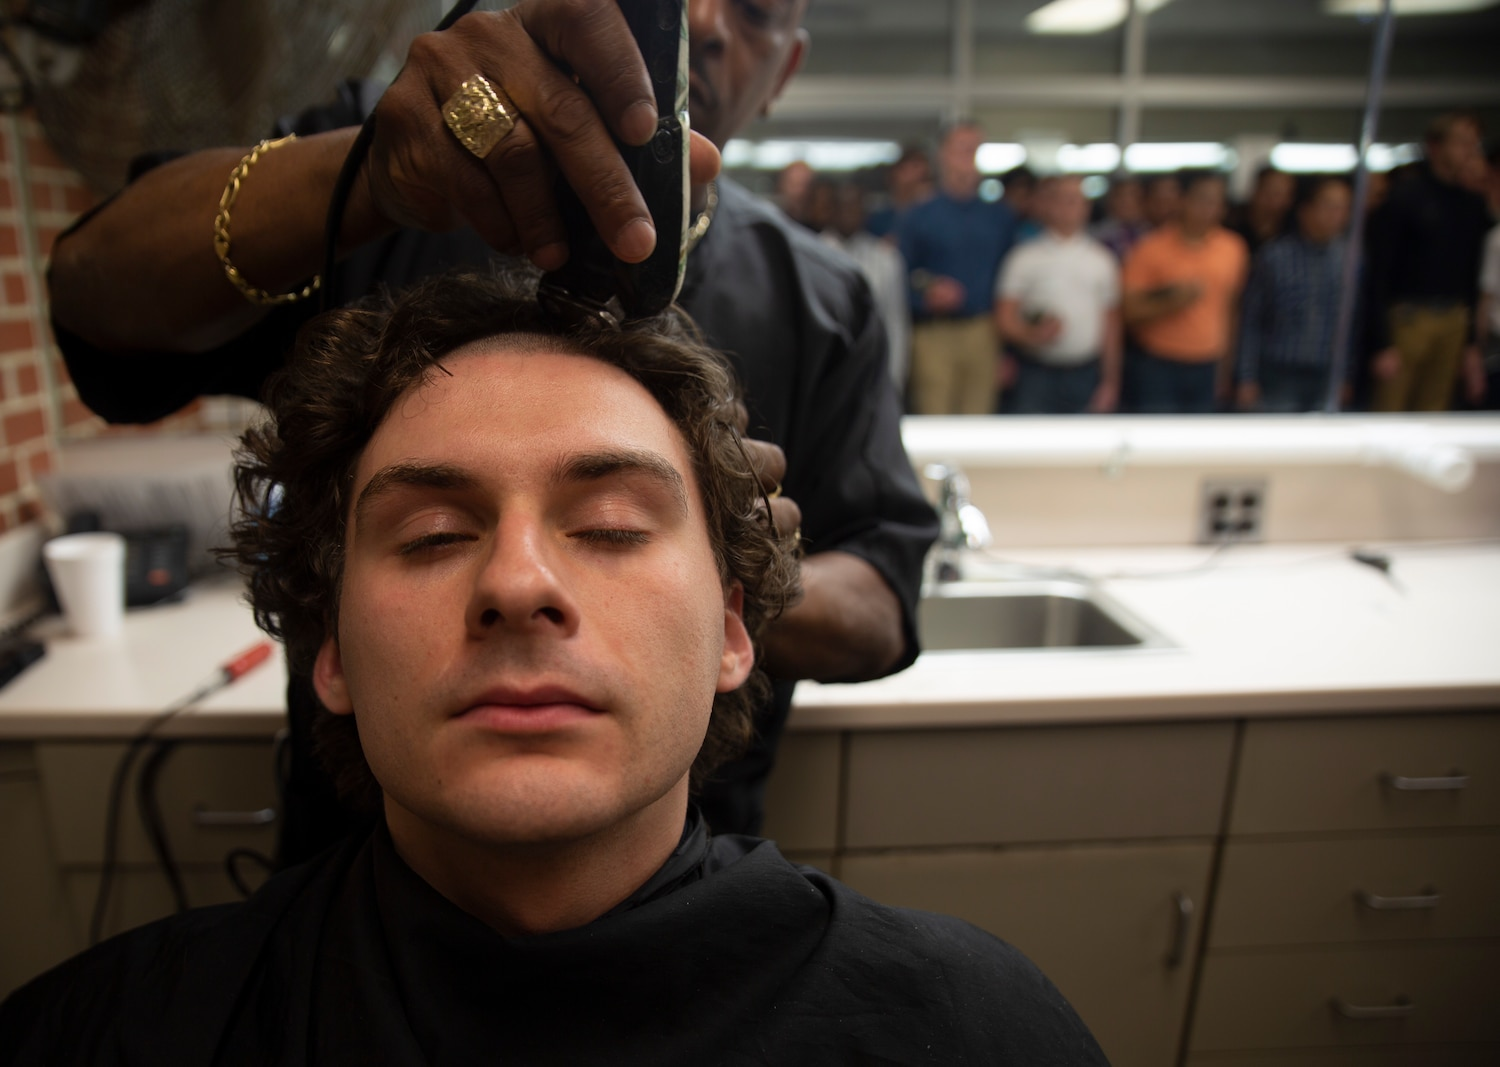 Rct. Joshua Ebbe, from Utica, N.Y., a new recruit with Fox Company, Second Recruit Training Battalion, receives his first haircut during receiving at Parris Island, S.C., on May 20th, 2019. During their first night on the island, recruits are issued gear and uniforms and process in their medical and dental records before being assigned to temporary drill instructors.